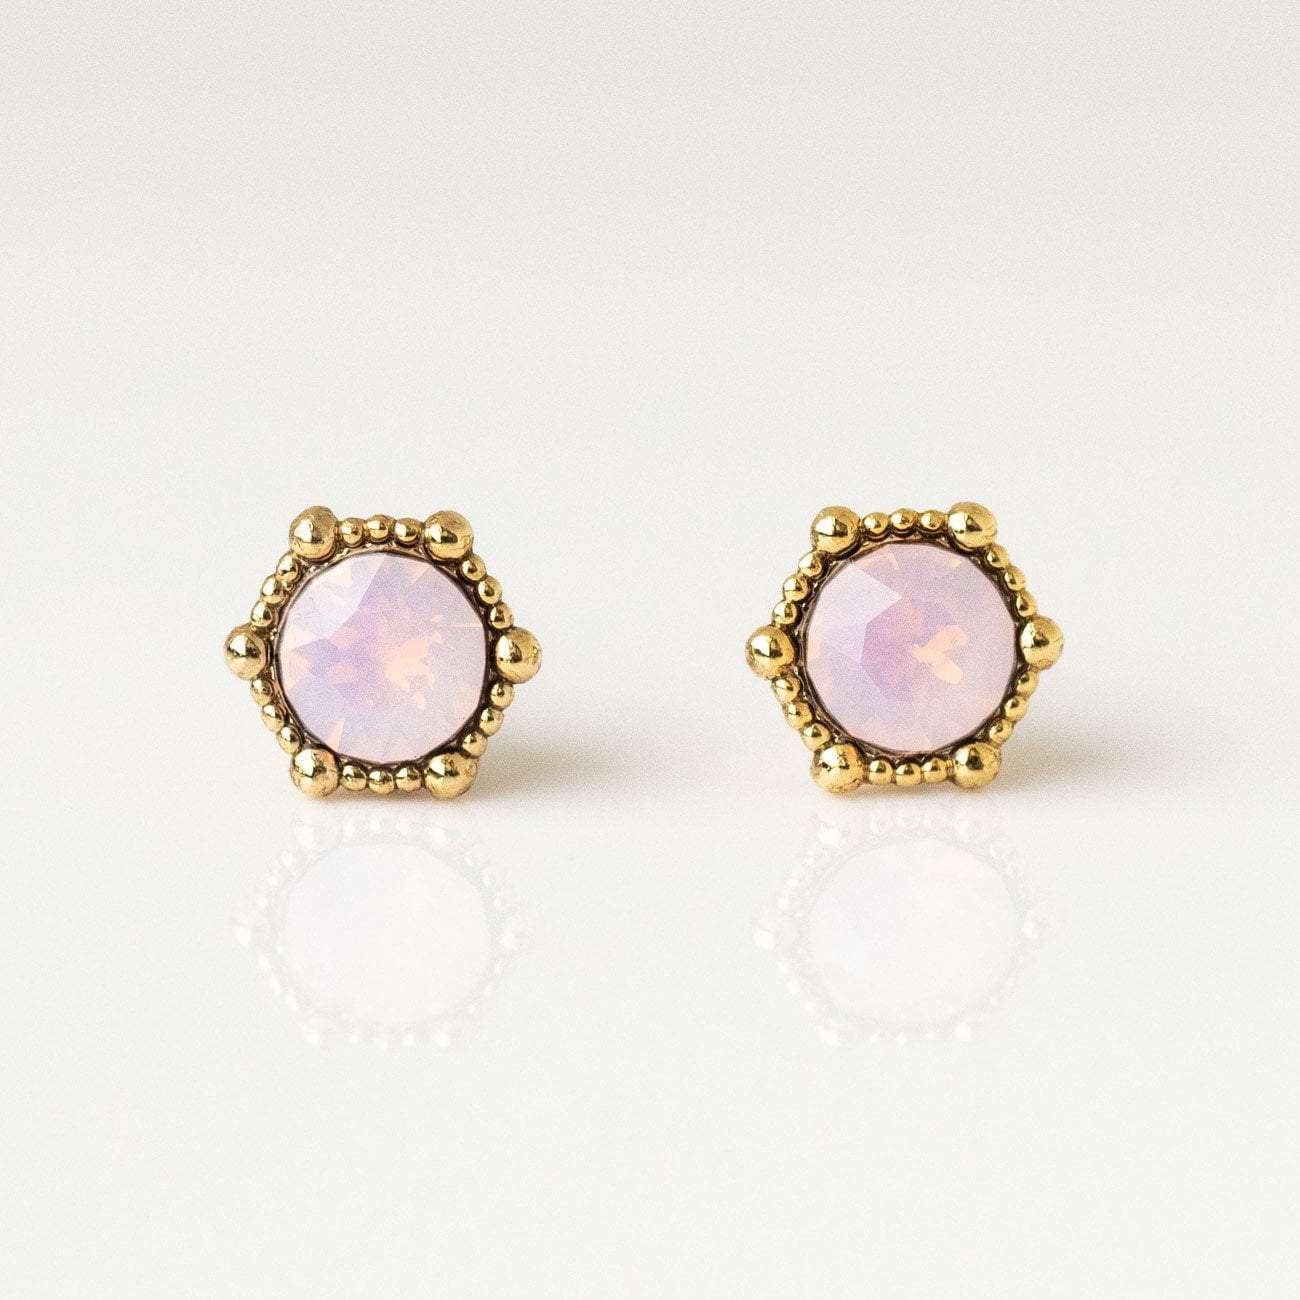 Details about  /Oval Created Pink Opal Stud Earrings Sterling Silver